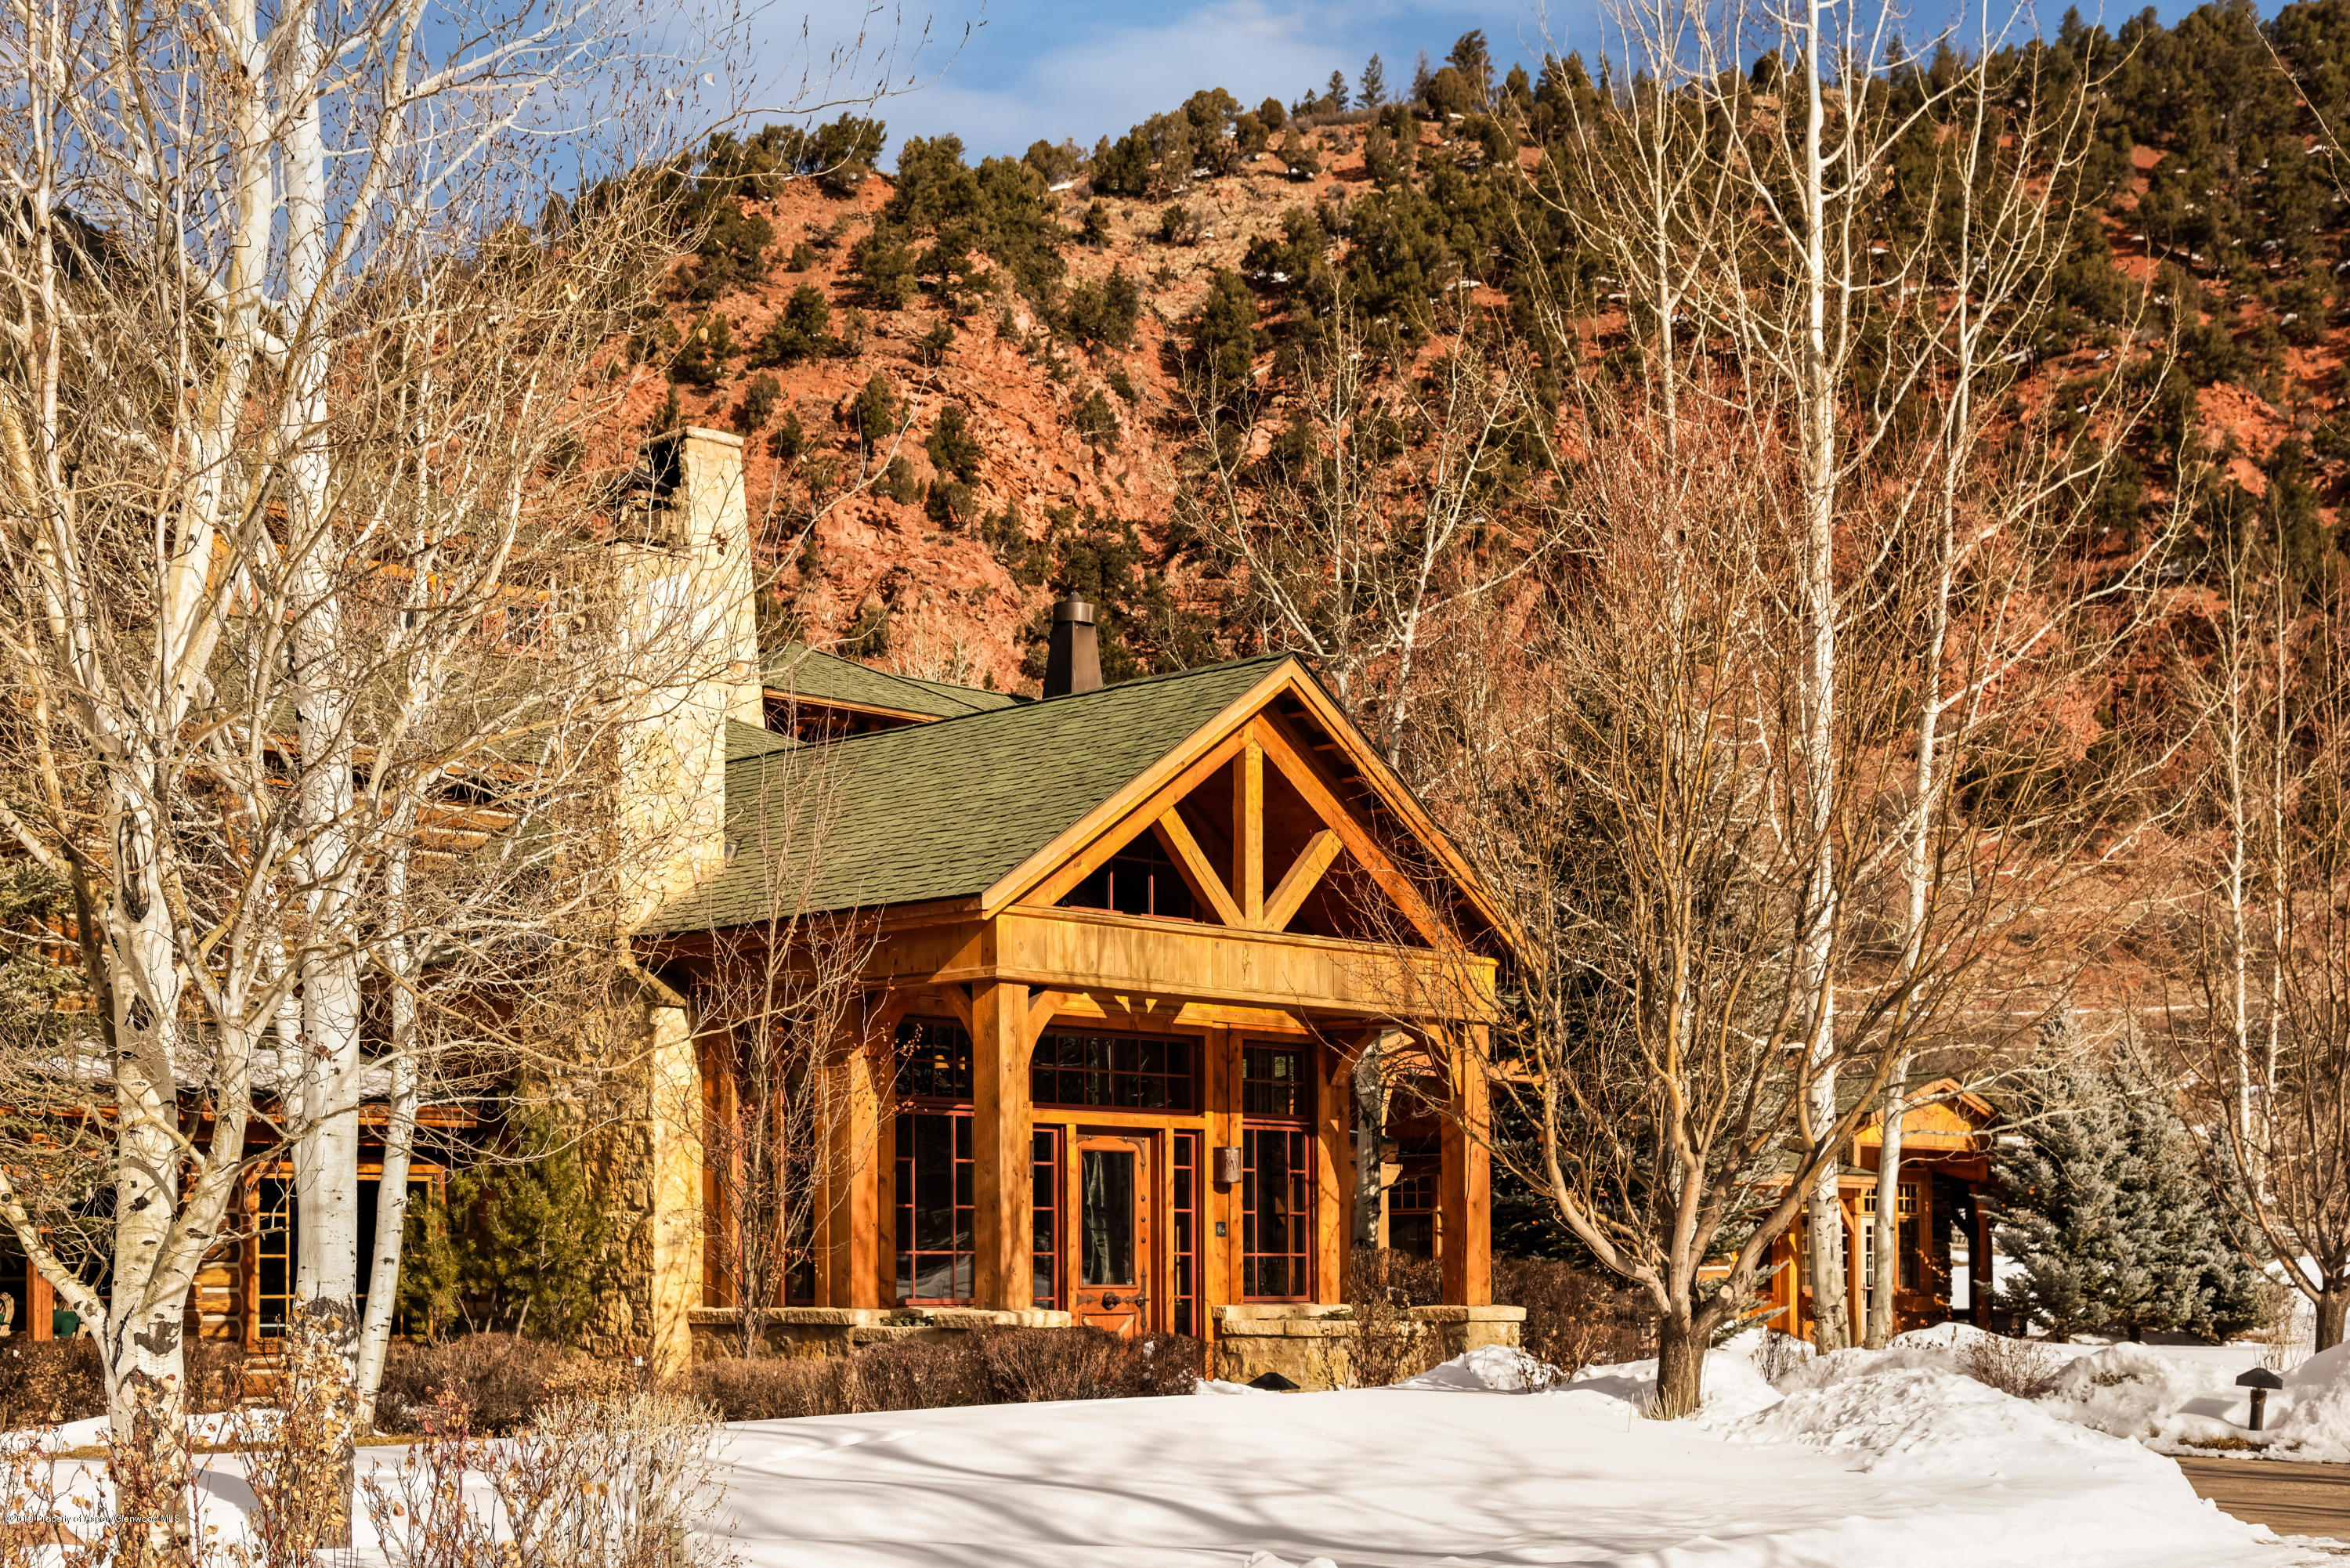 MLS# 135595 - 70 - 50 E River Ranch Road, Snowmass, CO 81654